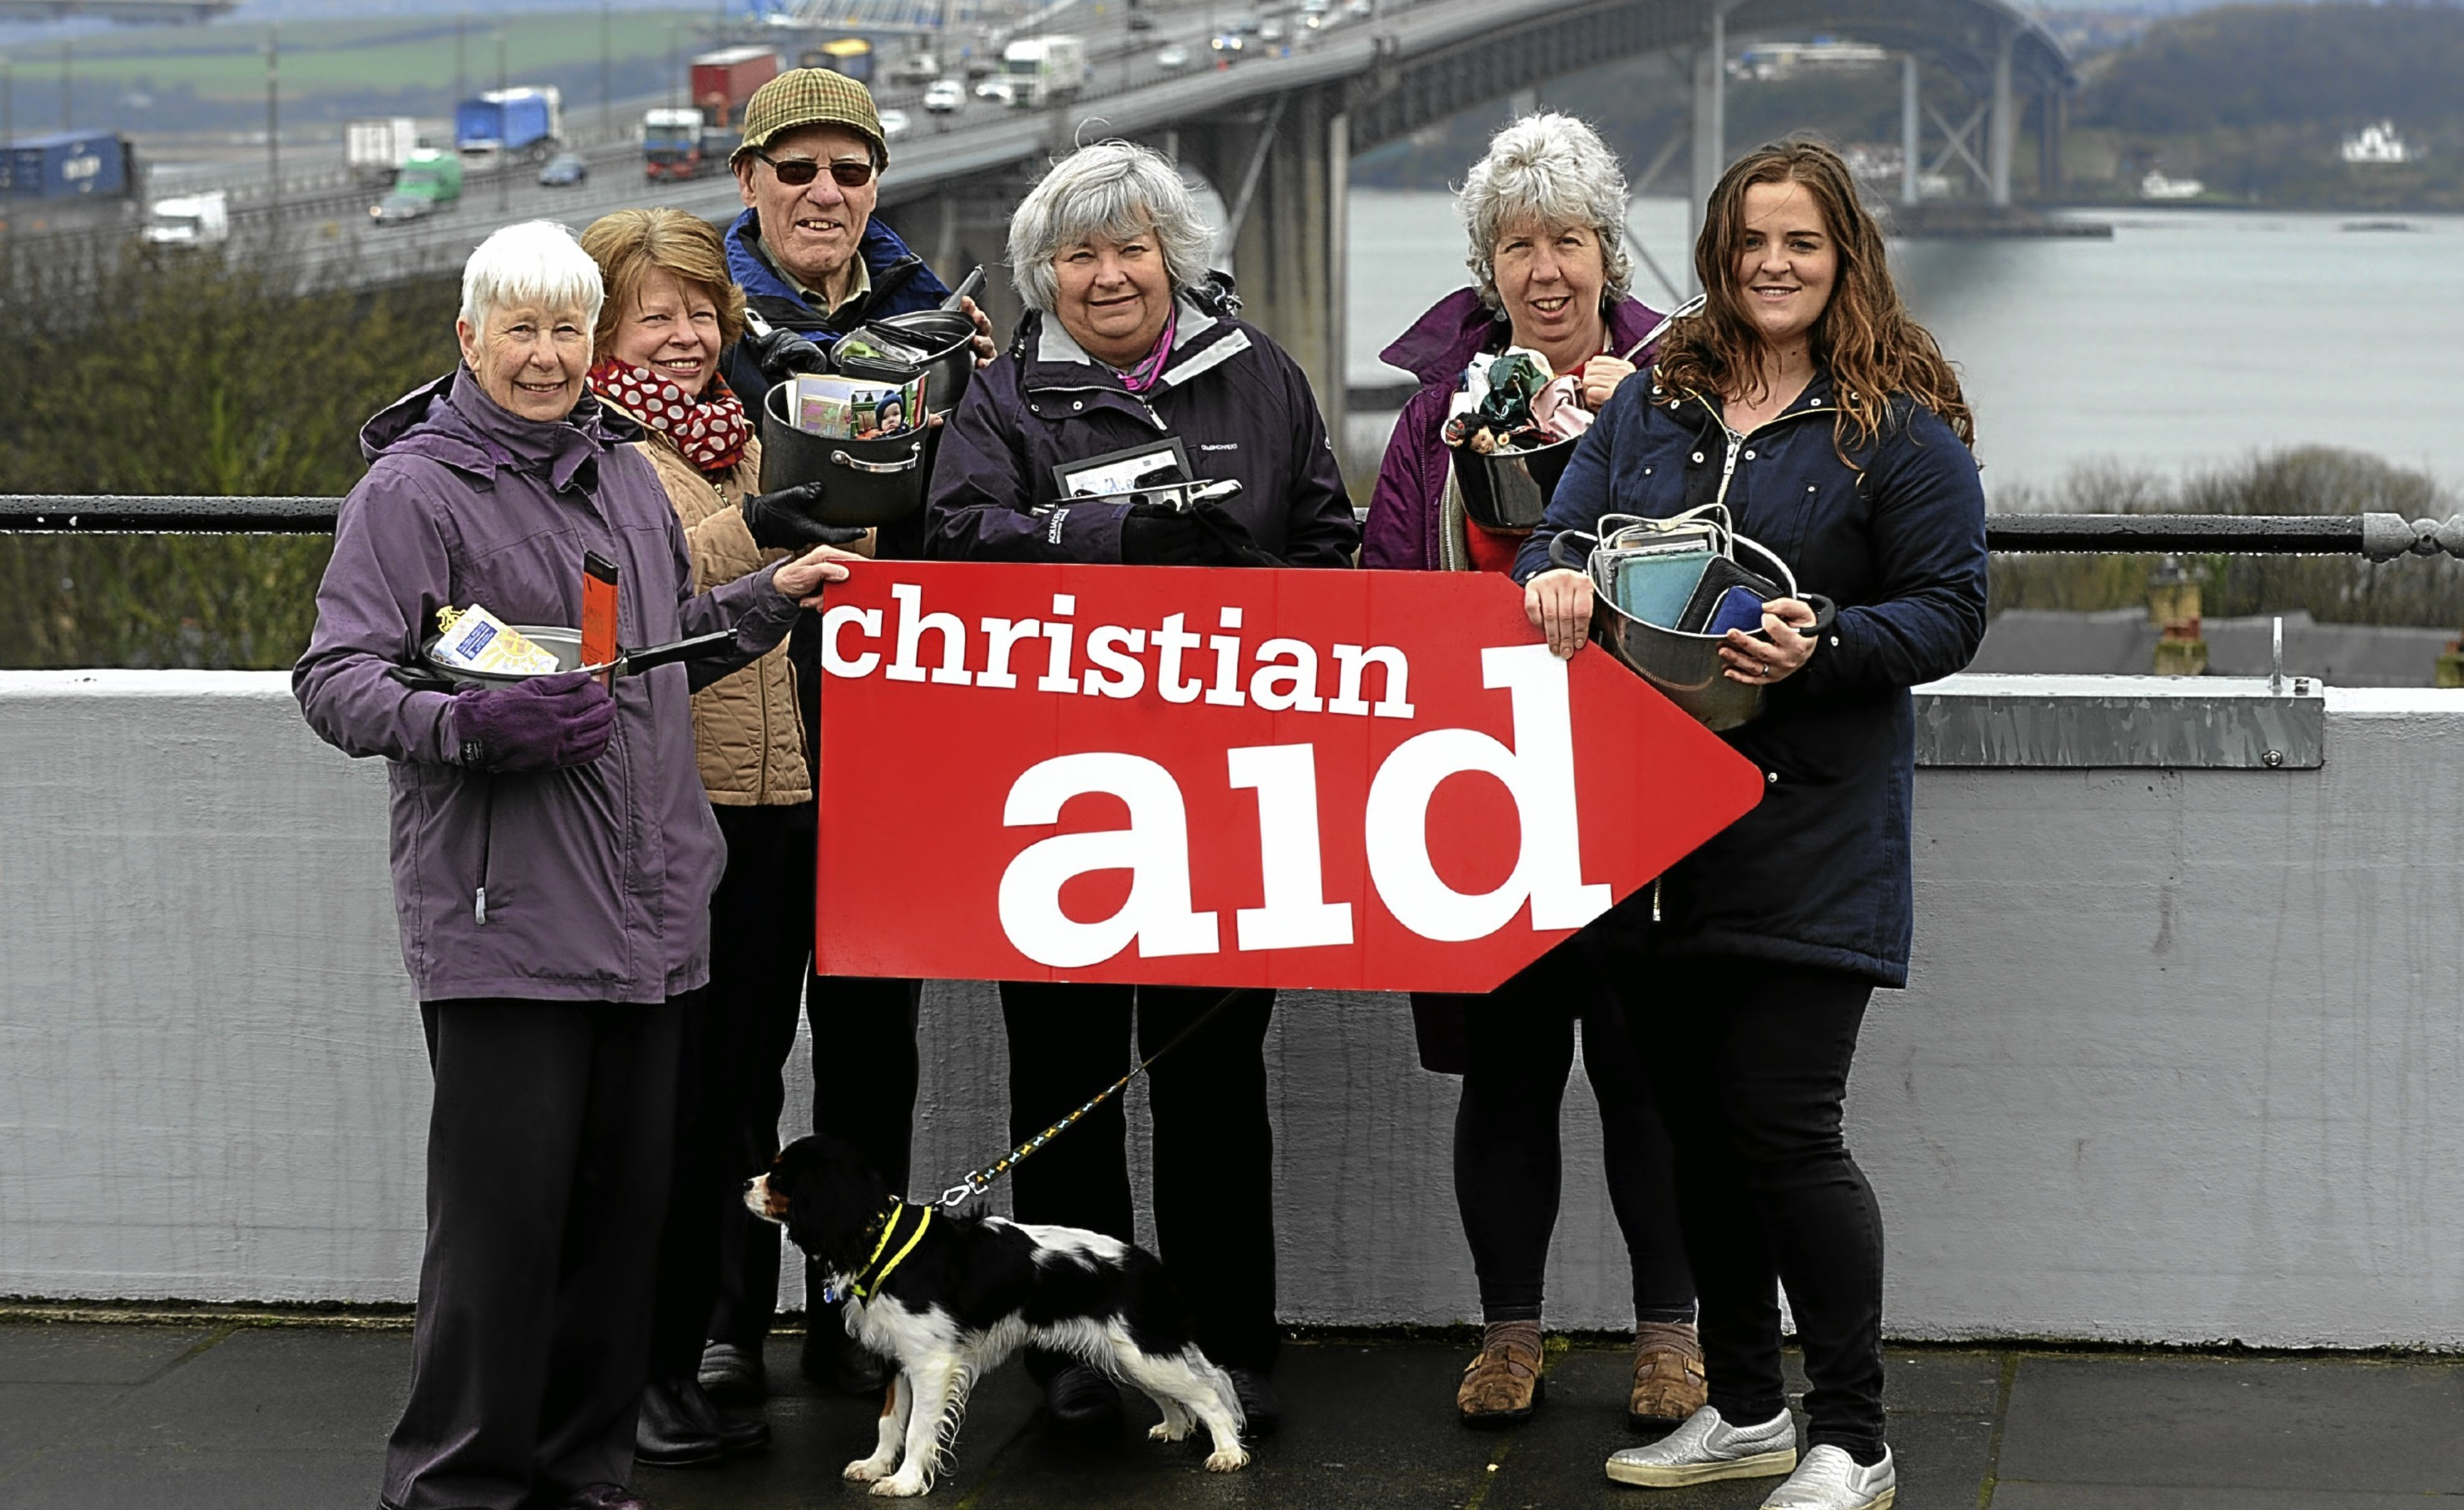 Christian Aid fundraisers Annette Carrie, Lesley MacKenzie, Tom Williamson, Gwenneth Williamson, Shenna Leslie, Amy Menzie with cooking pots which carry their most precious items. In Bangladesh, when homes flood people put their most precious items in their cooking pots to save them.The sponsored Forth Bridge Cross is 23rd April.Christian Aid Week starting the 15th May is raising funds for poor communities around the world including those in Bangladesh.